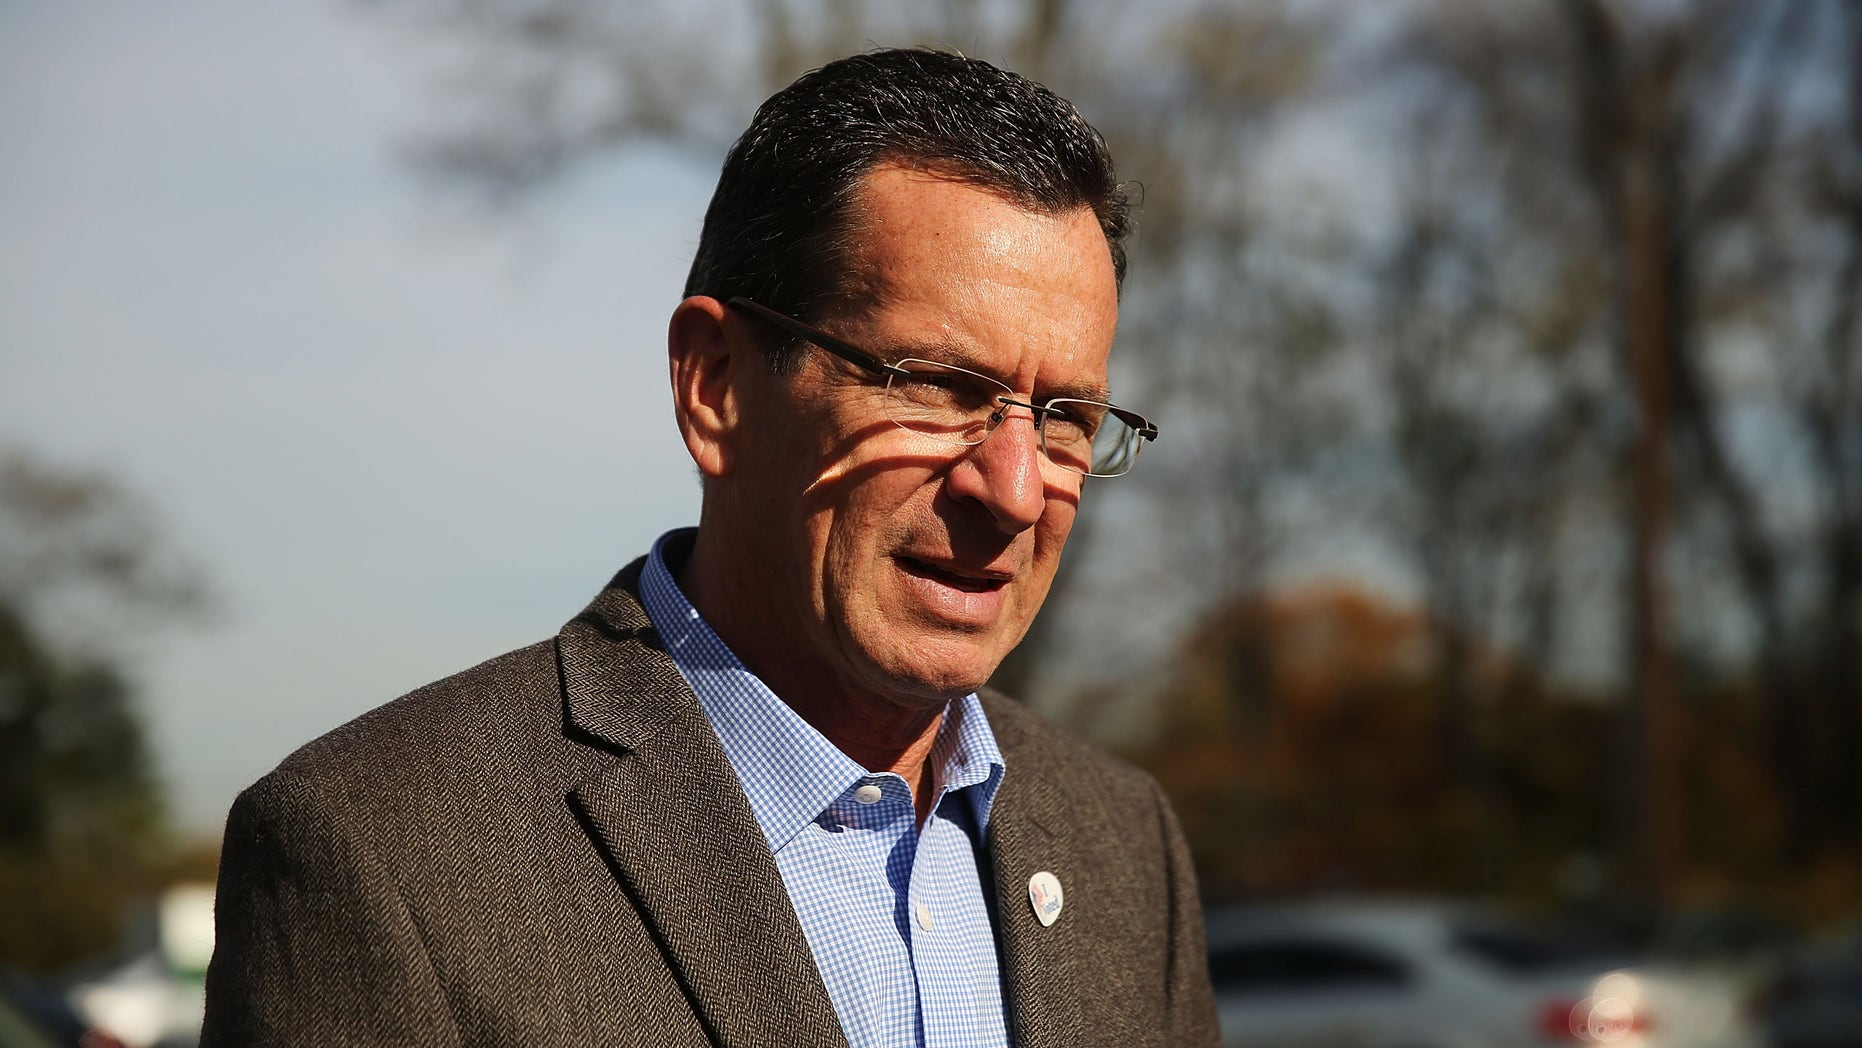 BRIDGEPORT, CT - NOVEMBER 04:  Democratic Connecticut Governor Dan Malloy stops at a polling station on November 4, 2014 in Bridgeport, Connecticut.  Around the country voters are turning out to decide the 2014 midterm elections. In Connecticut voters will decide on whether to keep Democratic Malloy who is currently in a dead heat with Republican Tom Foley. Polls show a tight race in many states with most analysts predicting that the Republicans are on track to make gains and possibly control the U.S. Senate.  (Photo by Spencer Platt/Getty Images)